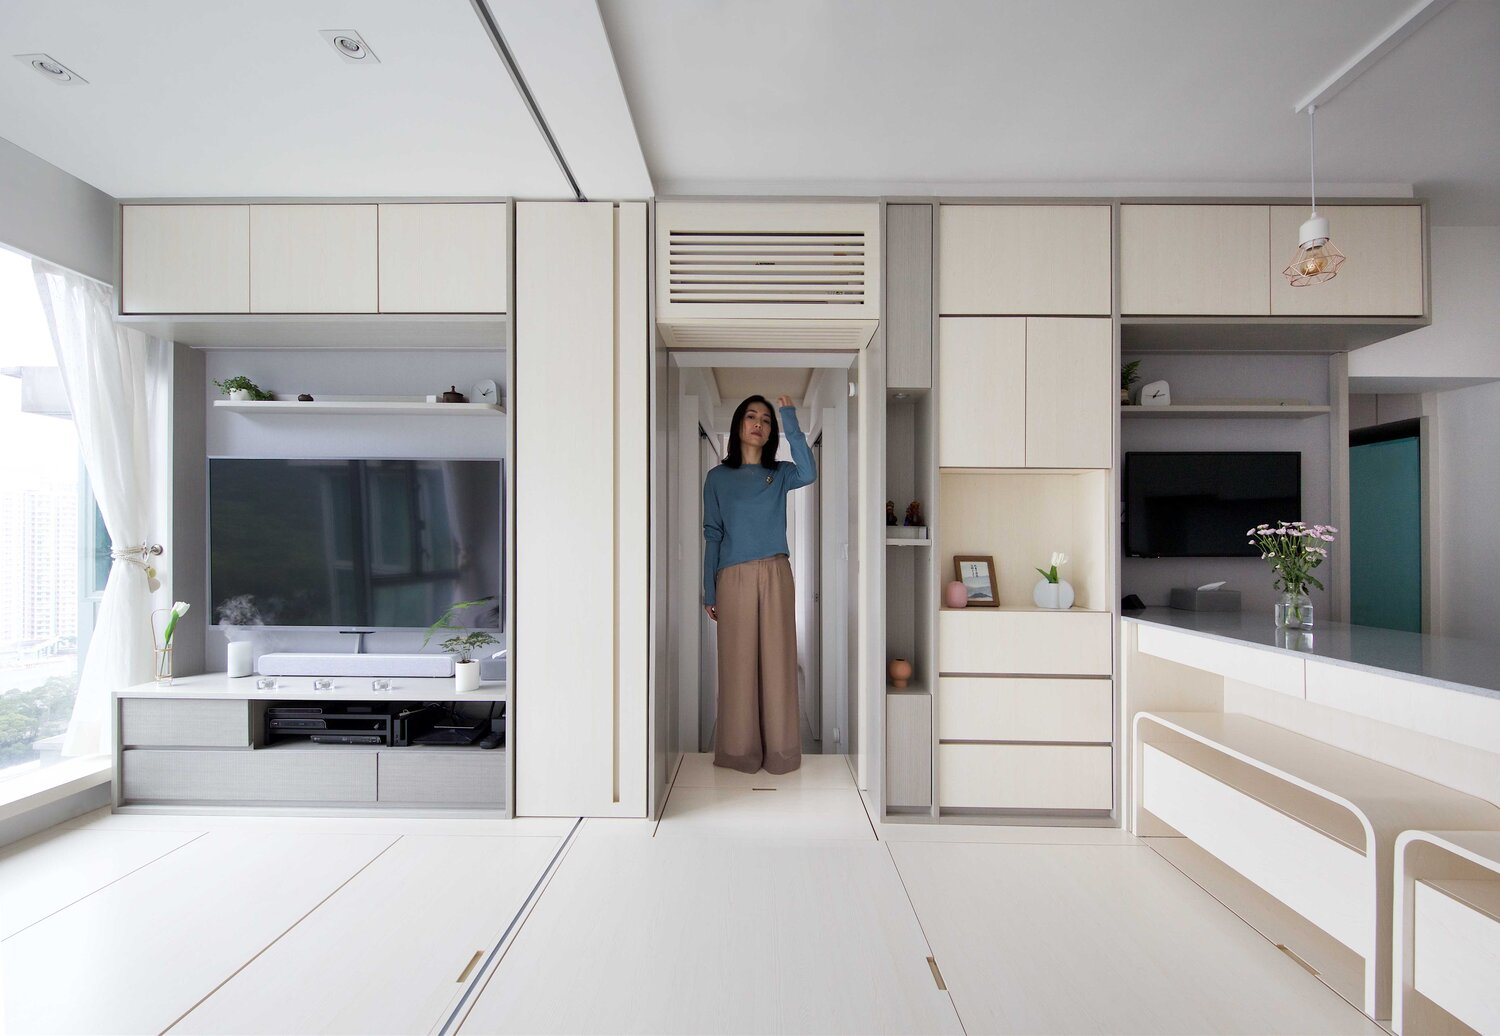 Hong Kong micro apartment packs smart tech into transformable spaces